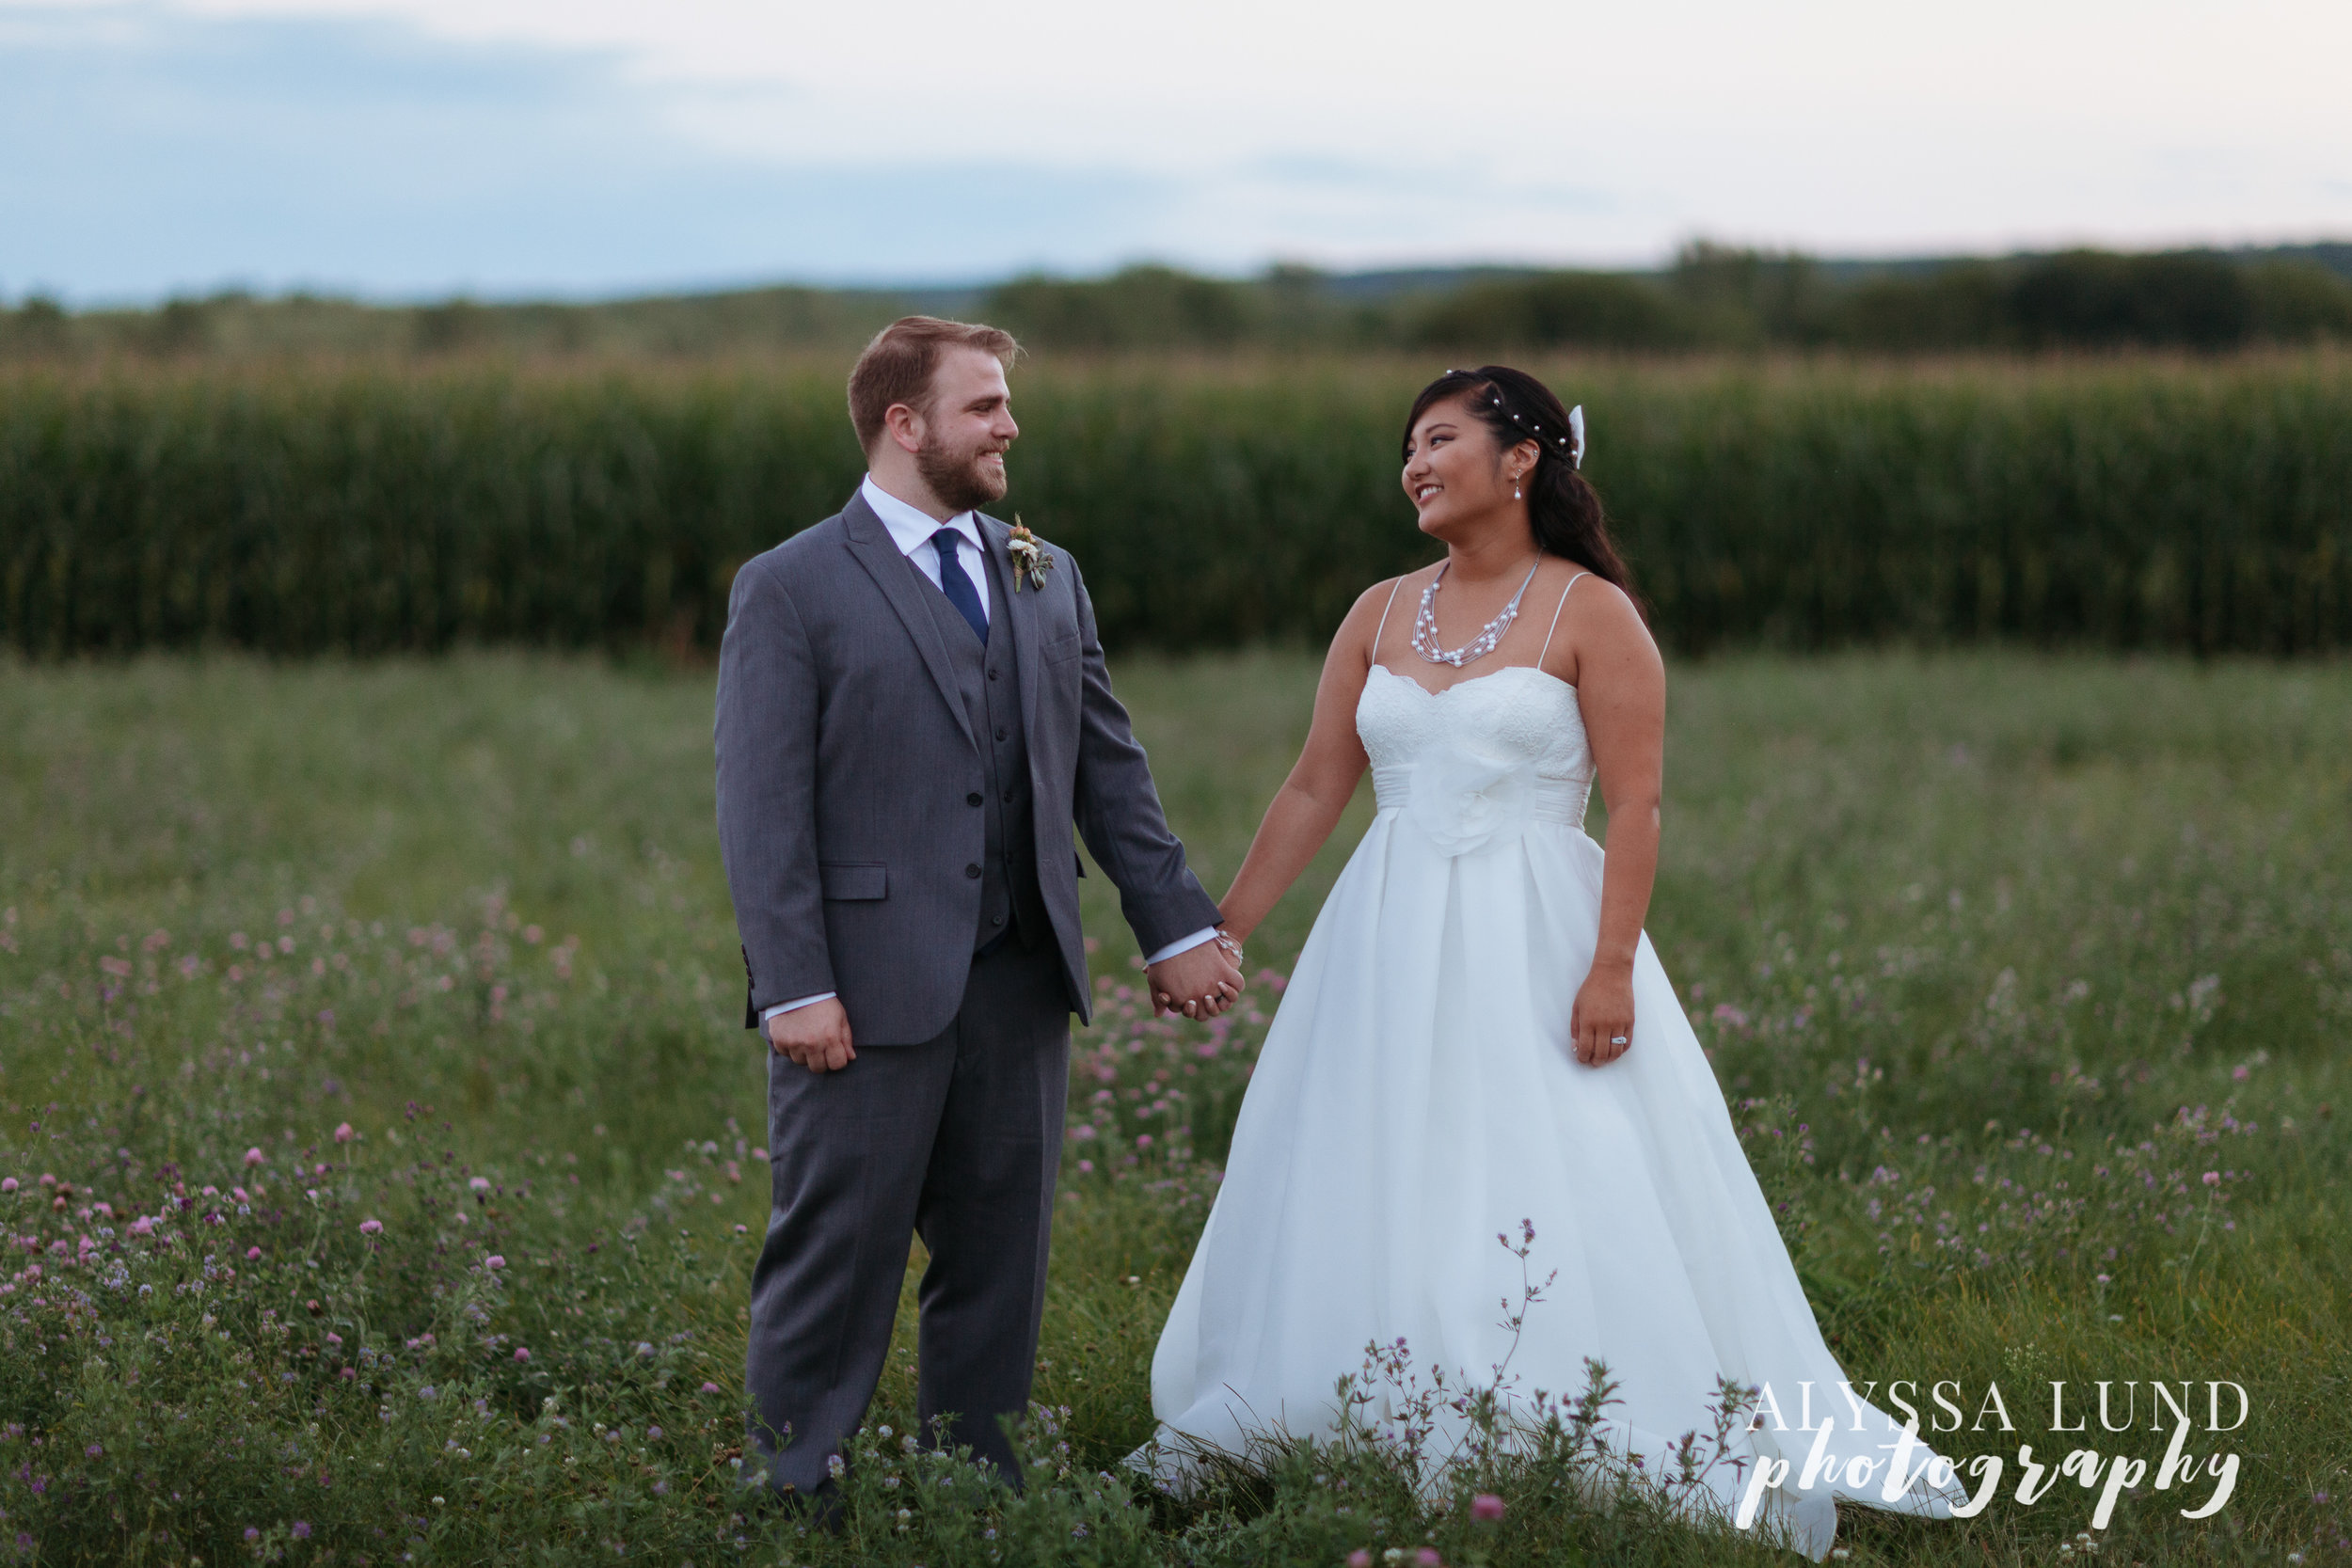 Minnesota Outdoor Wedding Photography at Dusk